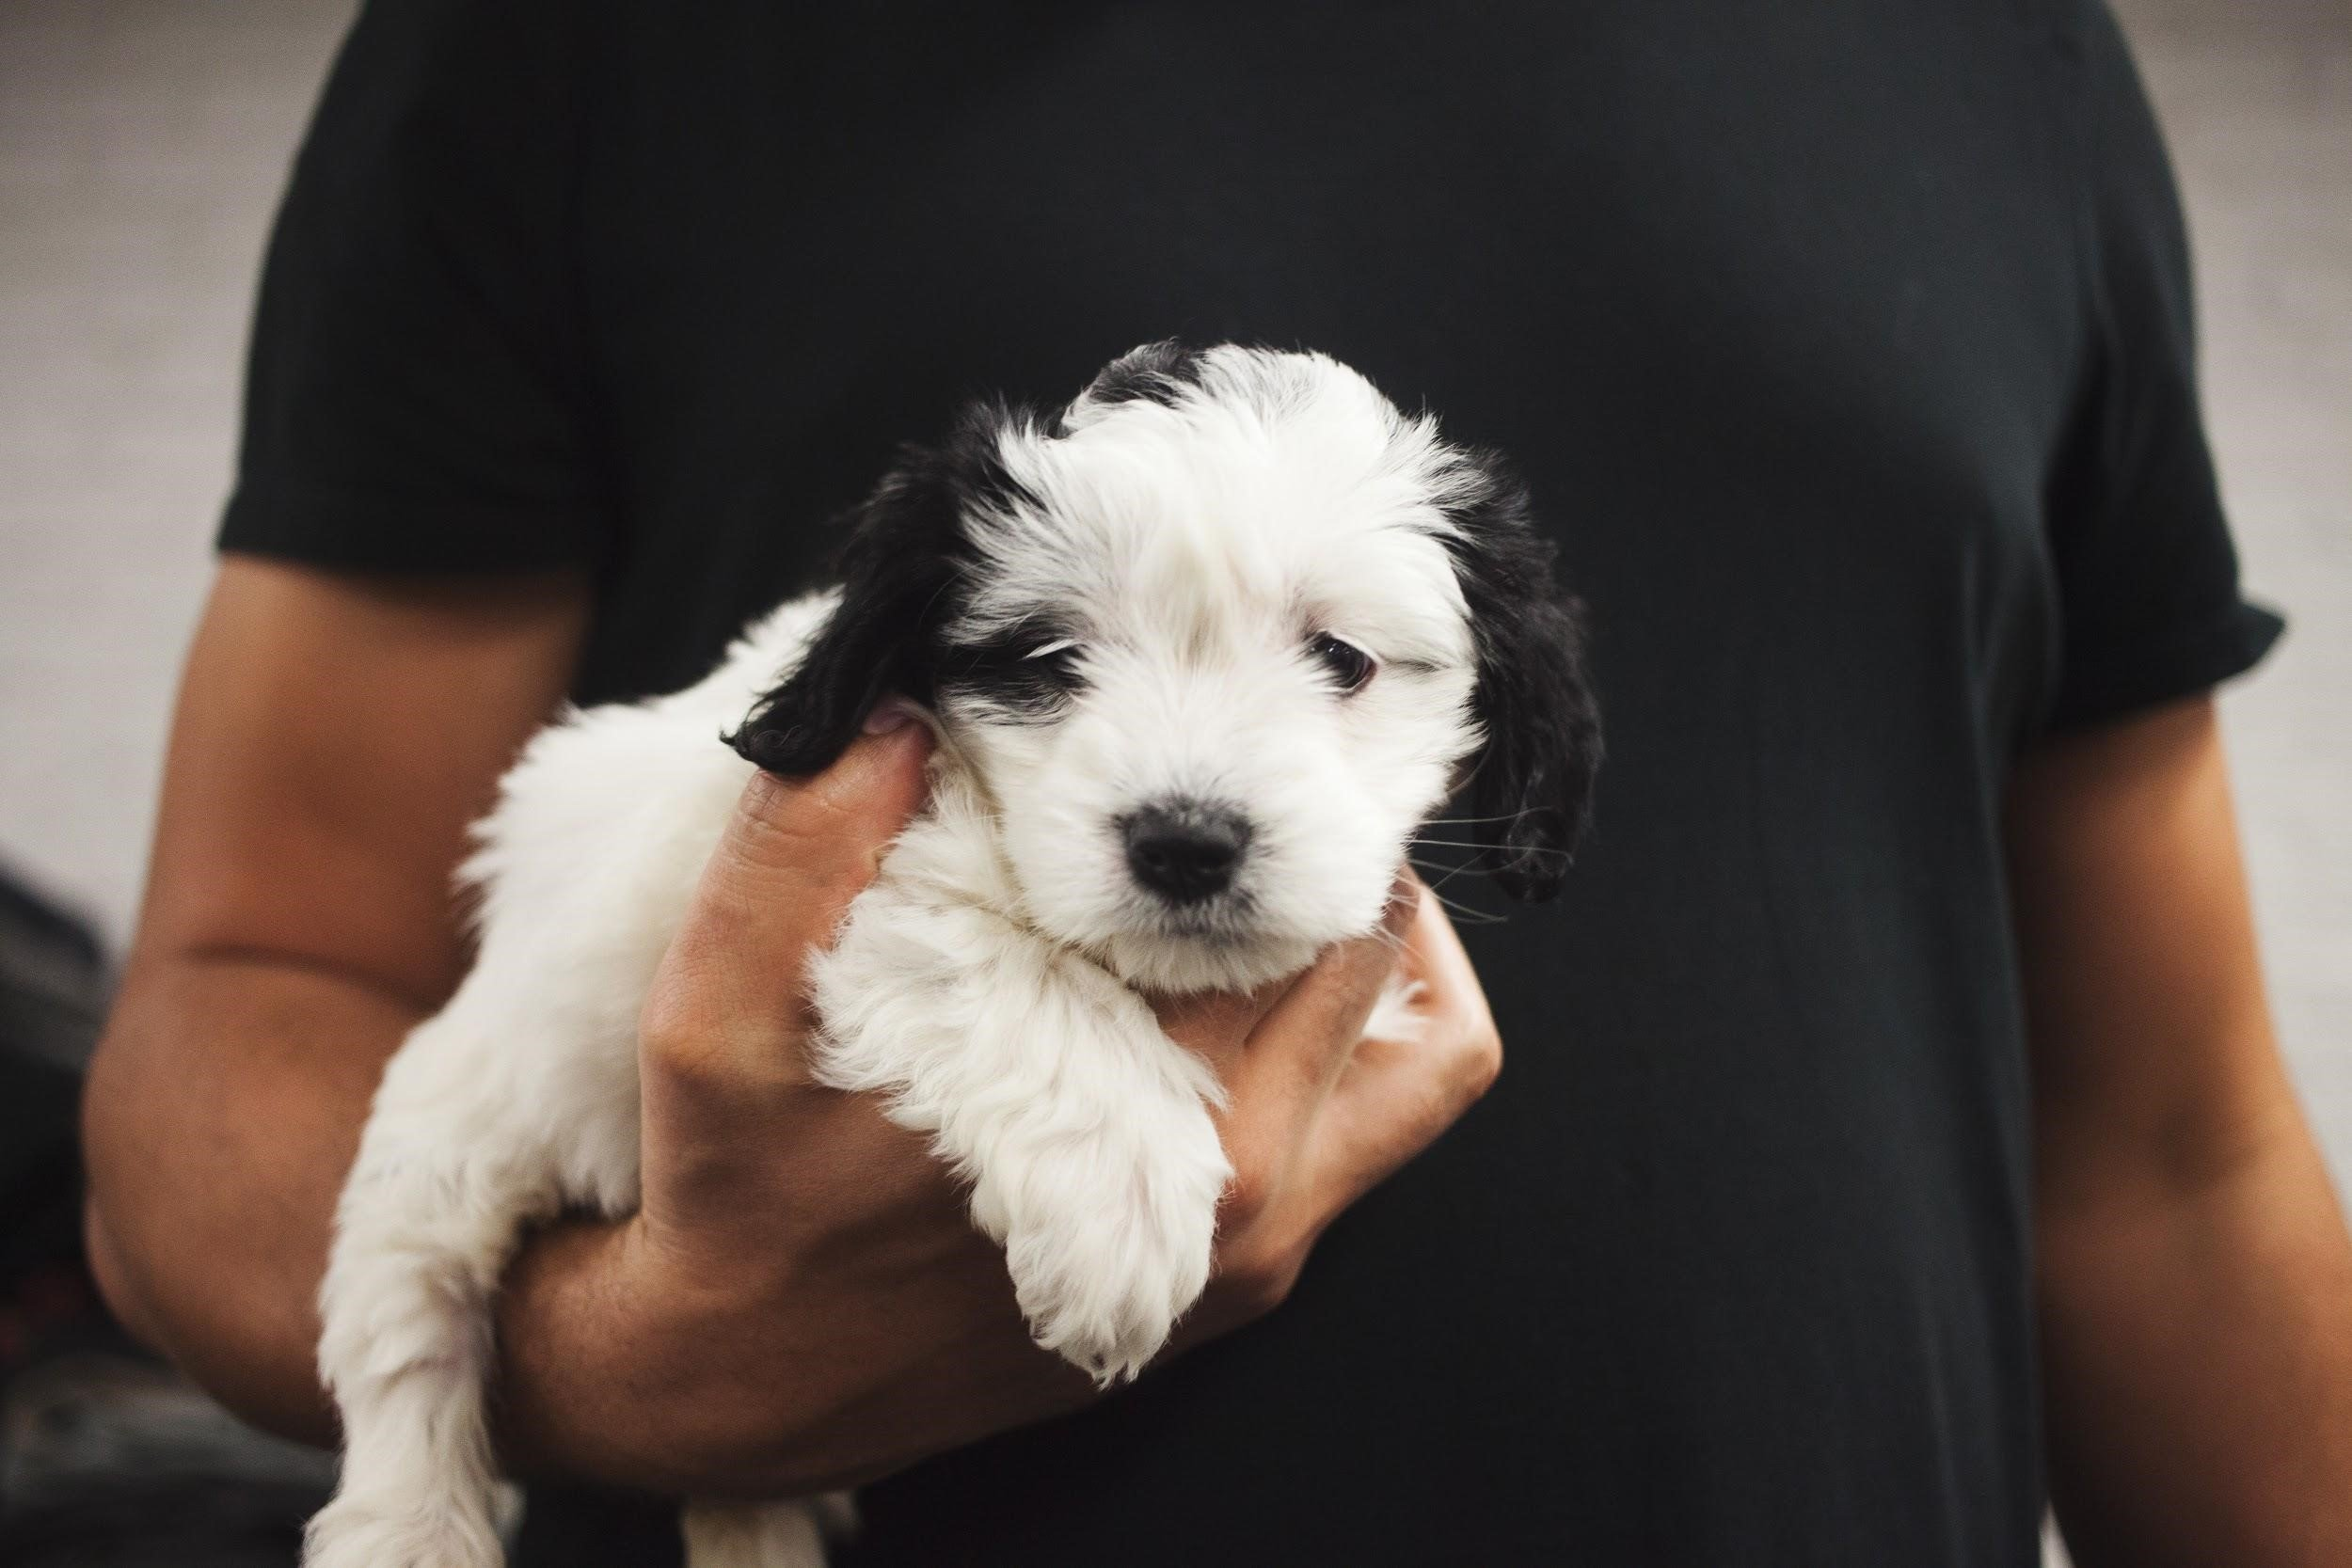 a hypoallergenic small dog is being held in the arms of a person